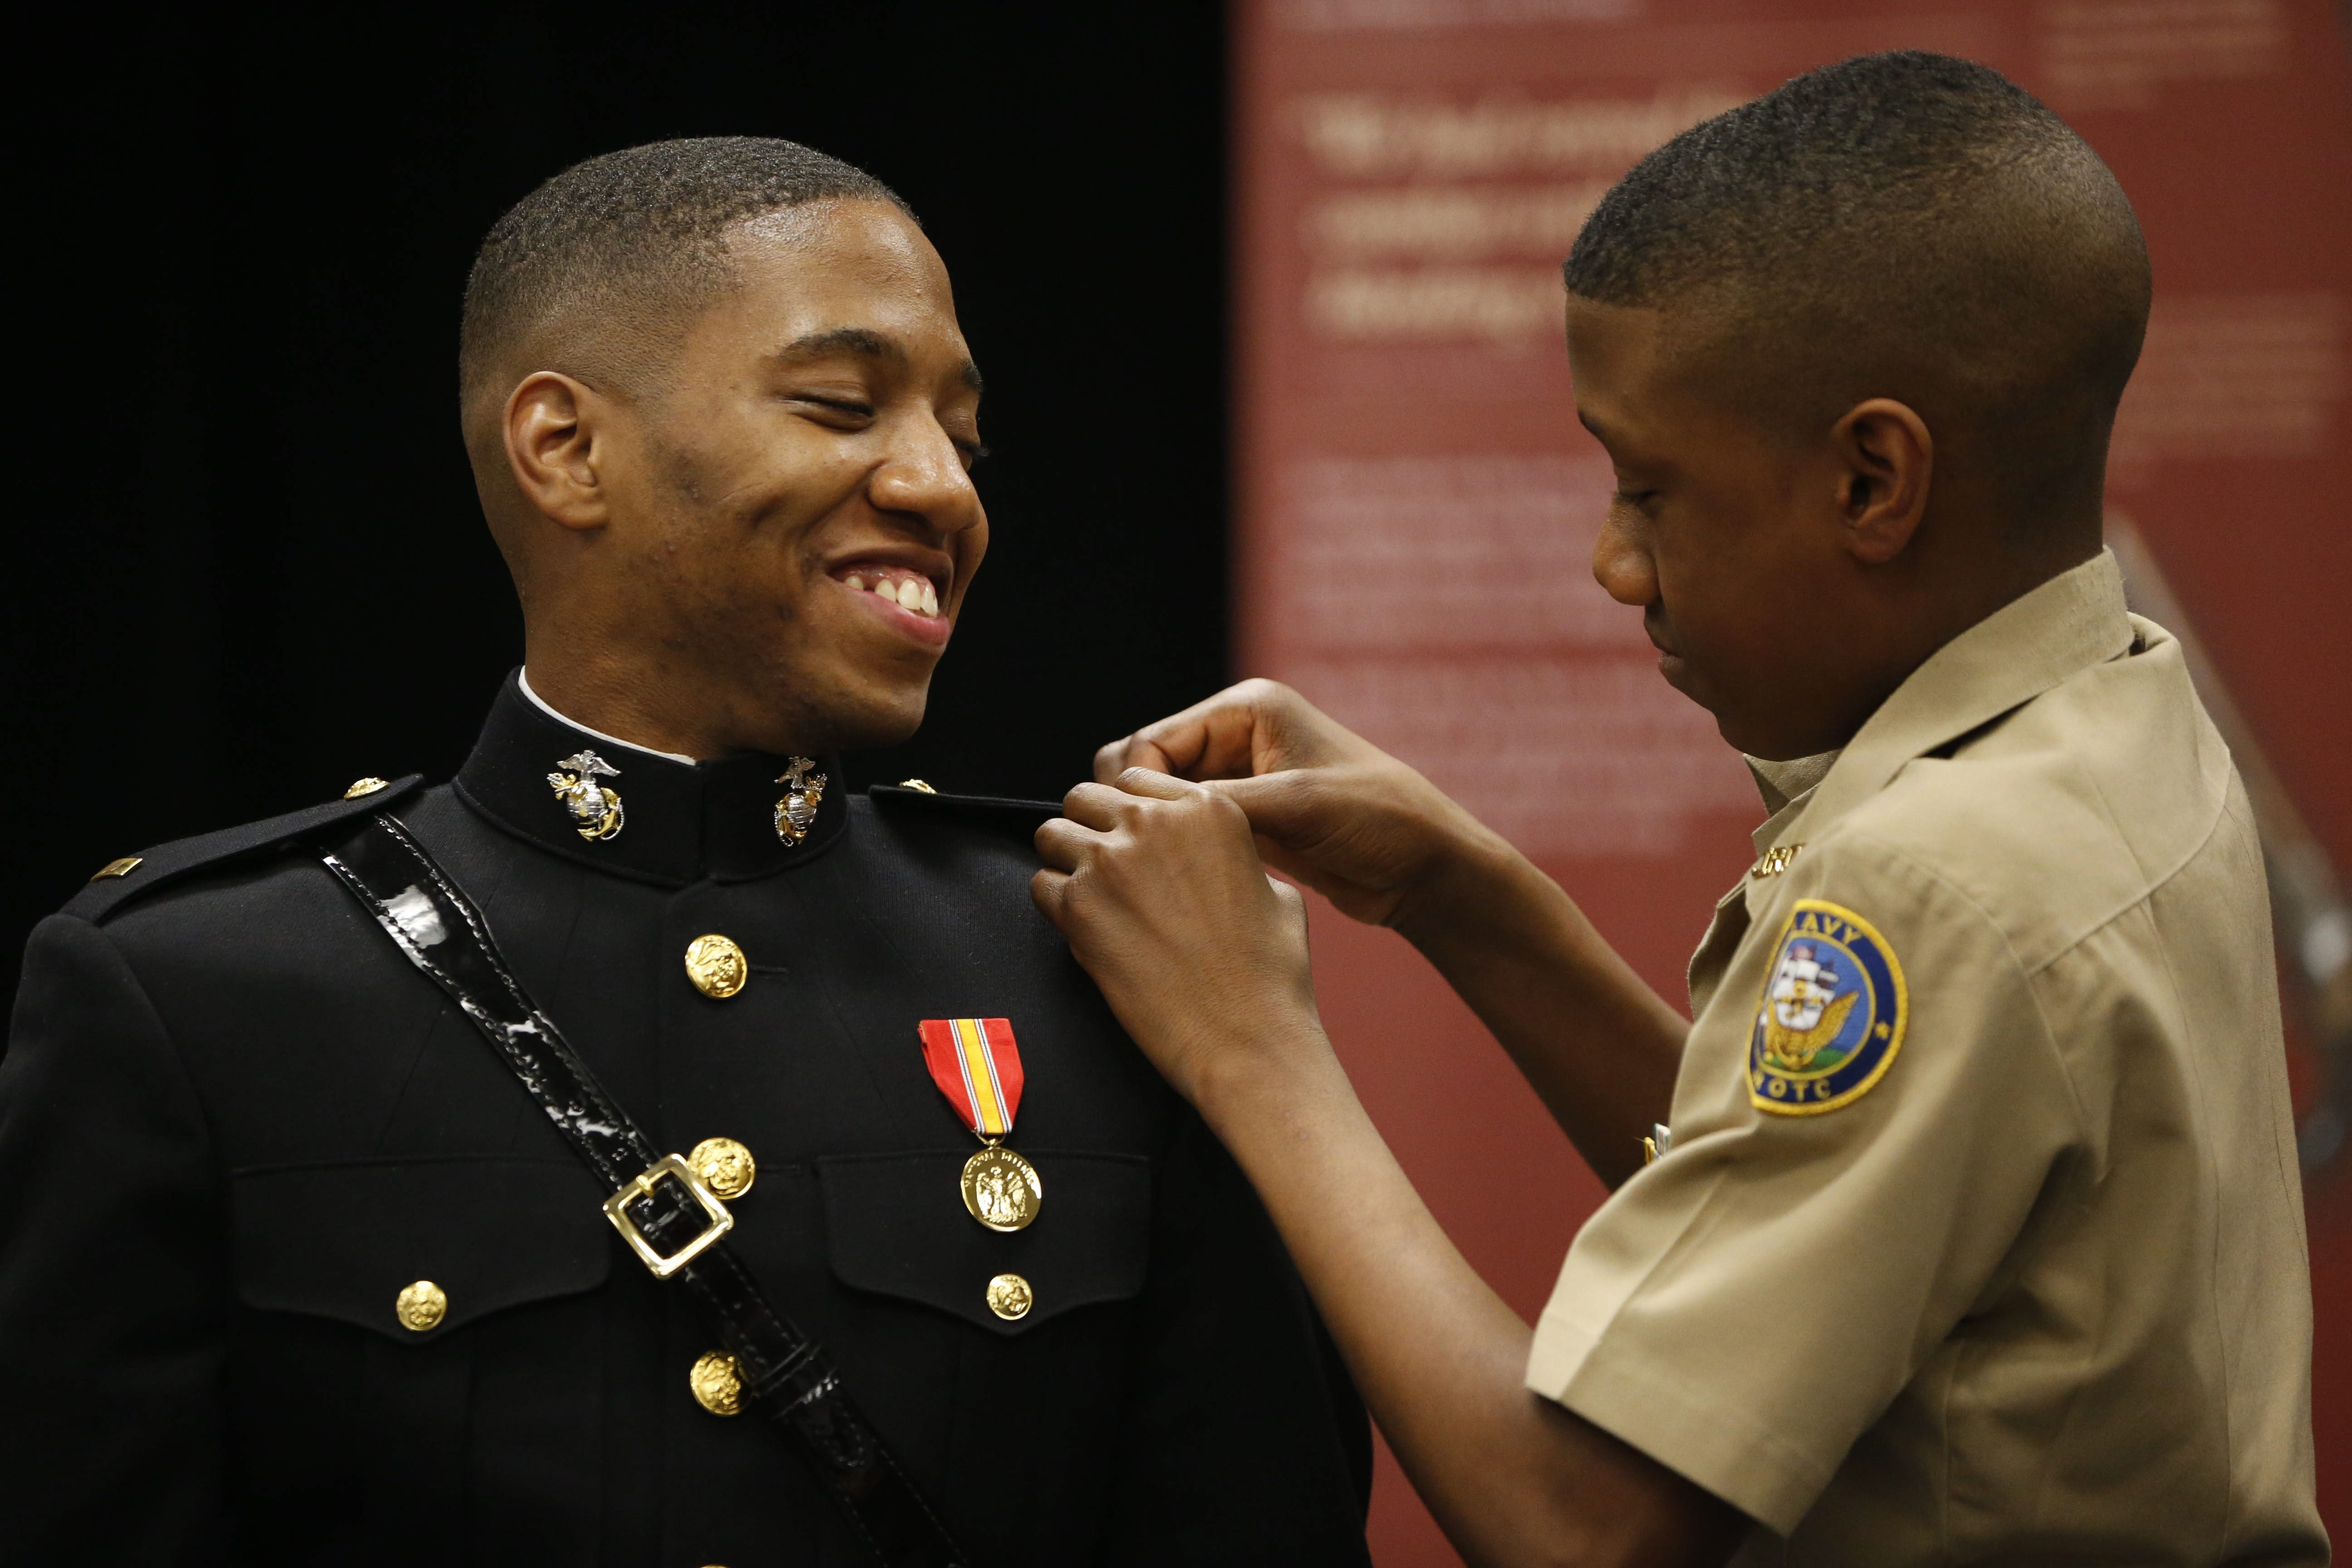 "U.S. Marine Corps Lt. Anthony J. Carter, a 2012 graduate of Maritime Charter School, laughs as his little brother Devon, 14, pins on his lieutenant bars during a ceremony at his alma mater on Wednesday.  ""I was heading down the wrong path, to become another statistic. If I had continued down that path, there's no way I would have graduated from high school and gone to college."" – U.S. Marine Corps Lt. Anthony J. Carter"